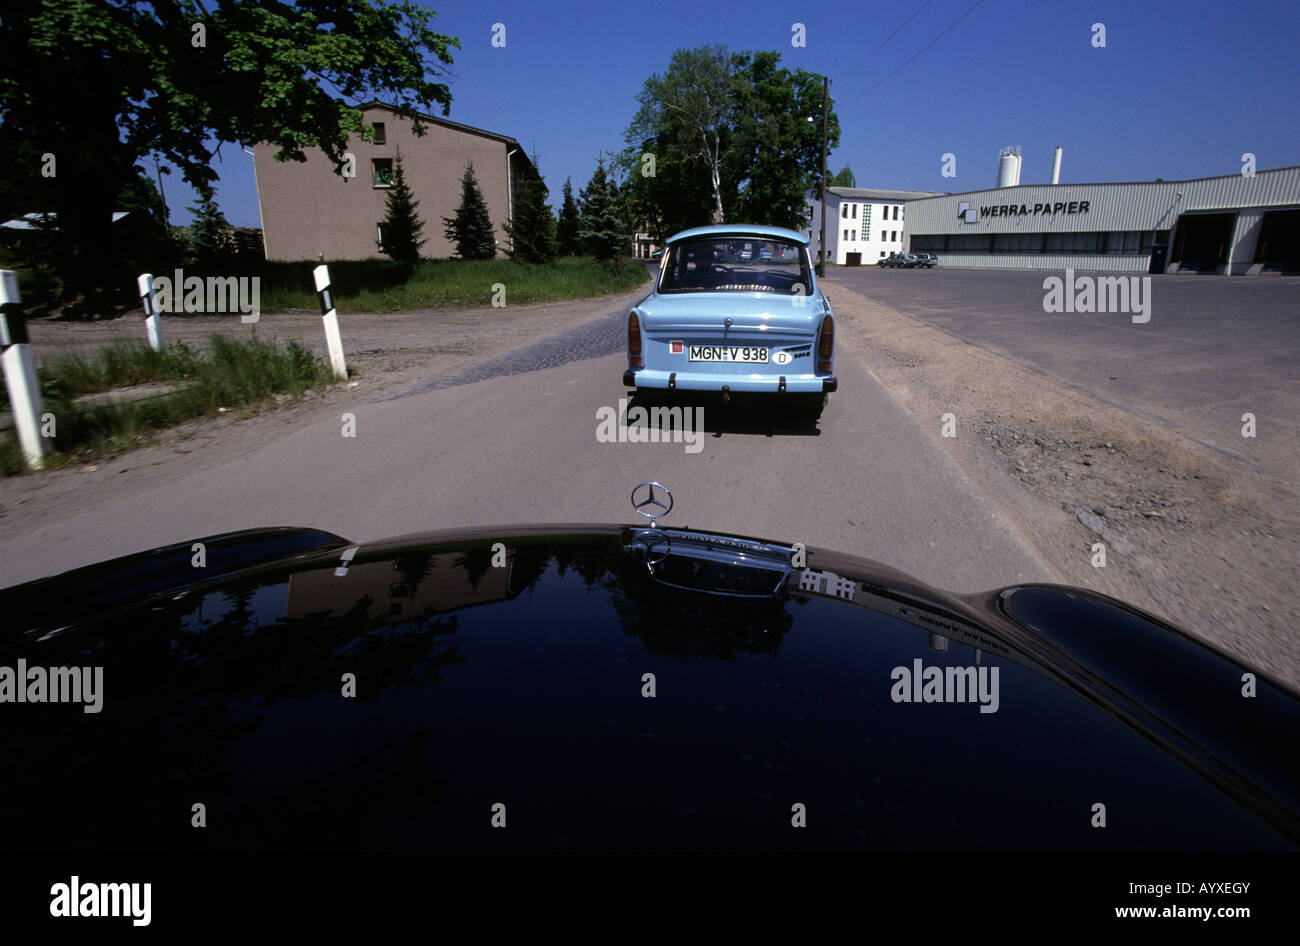 GERMANY DDR COLD WAR MERCEDES TRABANT TRABBIE OLD AND NEW - Stock Image